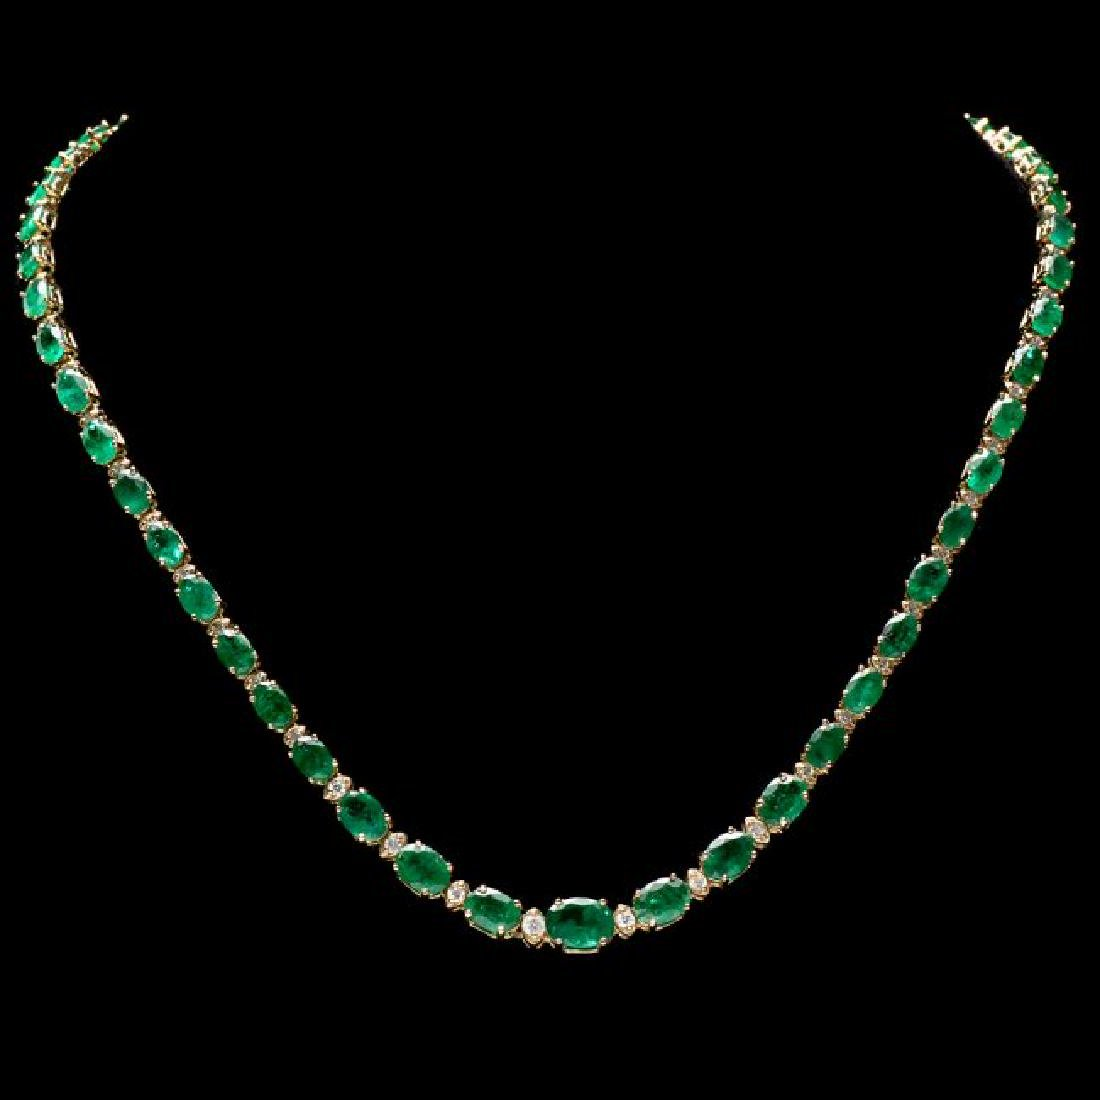 14k Gold 23ct Emerald 1.10ct Diamond Necklace